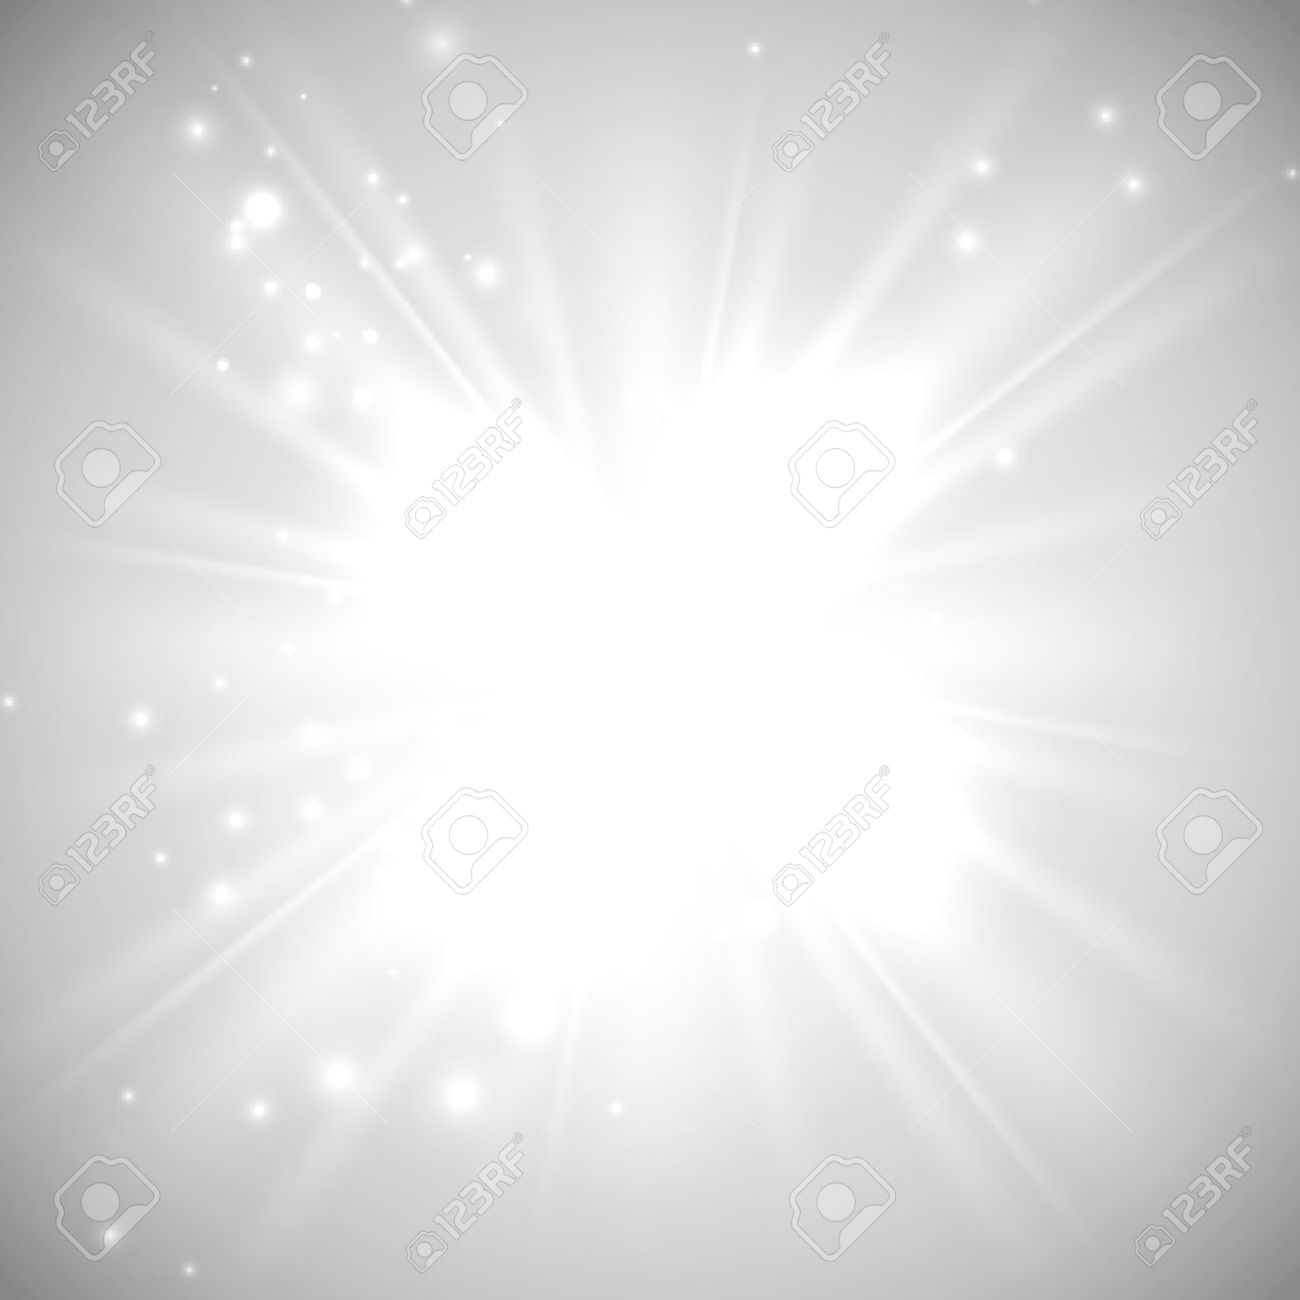 vector illustration of bright flash, explosion or burst on the white background - 36858162